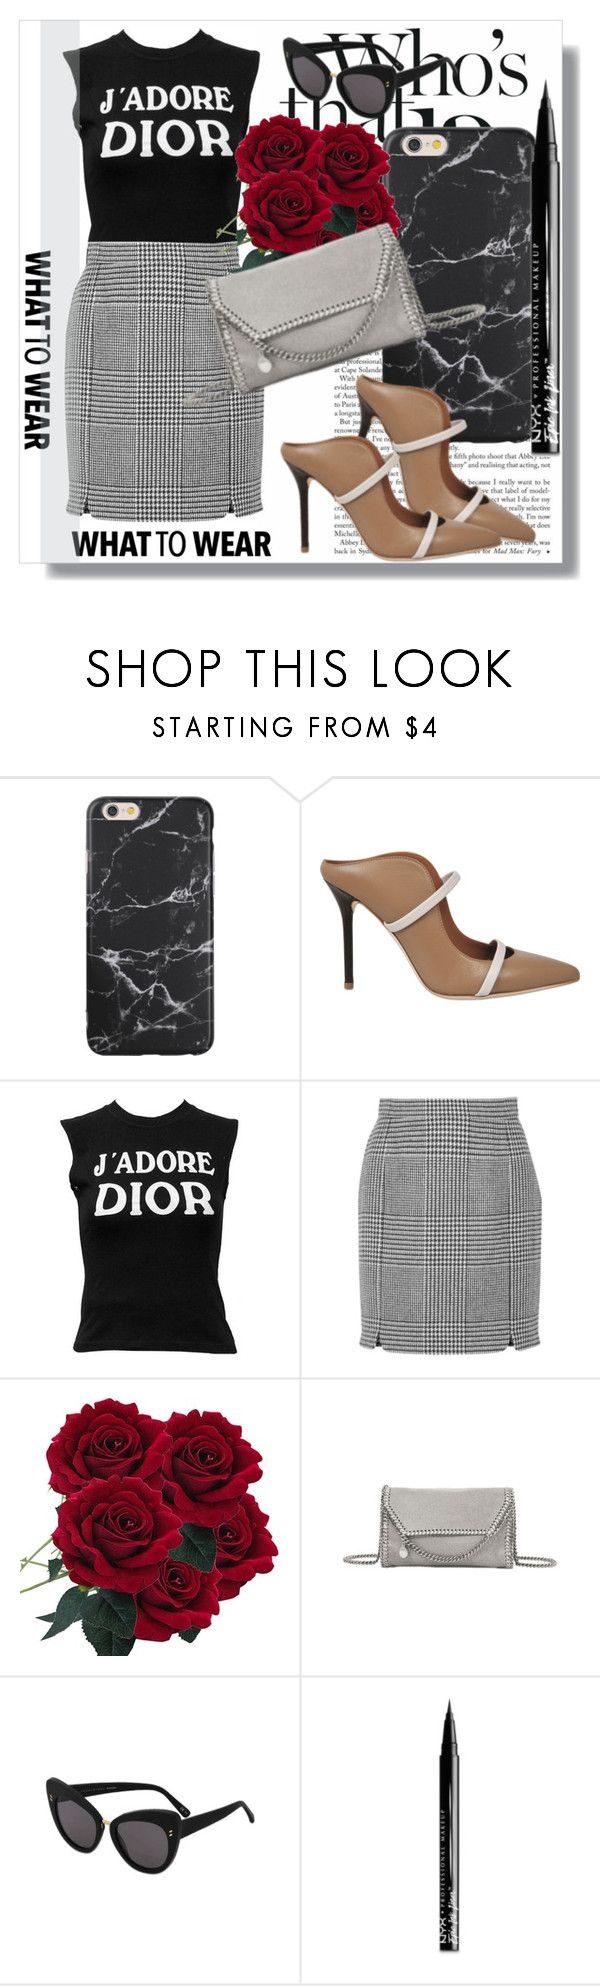 """""""Monnier Freres !!"""" by dianagrigoryan ❤ liked on Polyvore featuring Malone Souliers, Christian Dior, Pierre Balmain, STELLA McCARTNEY and NYX"""